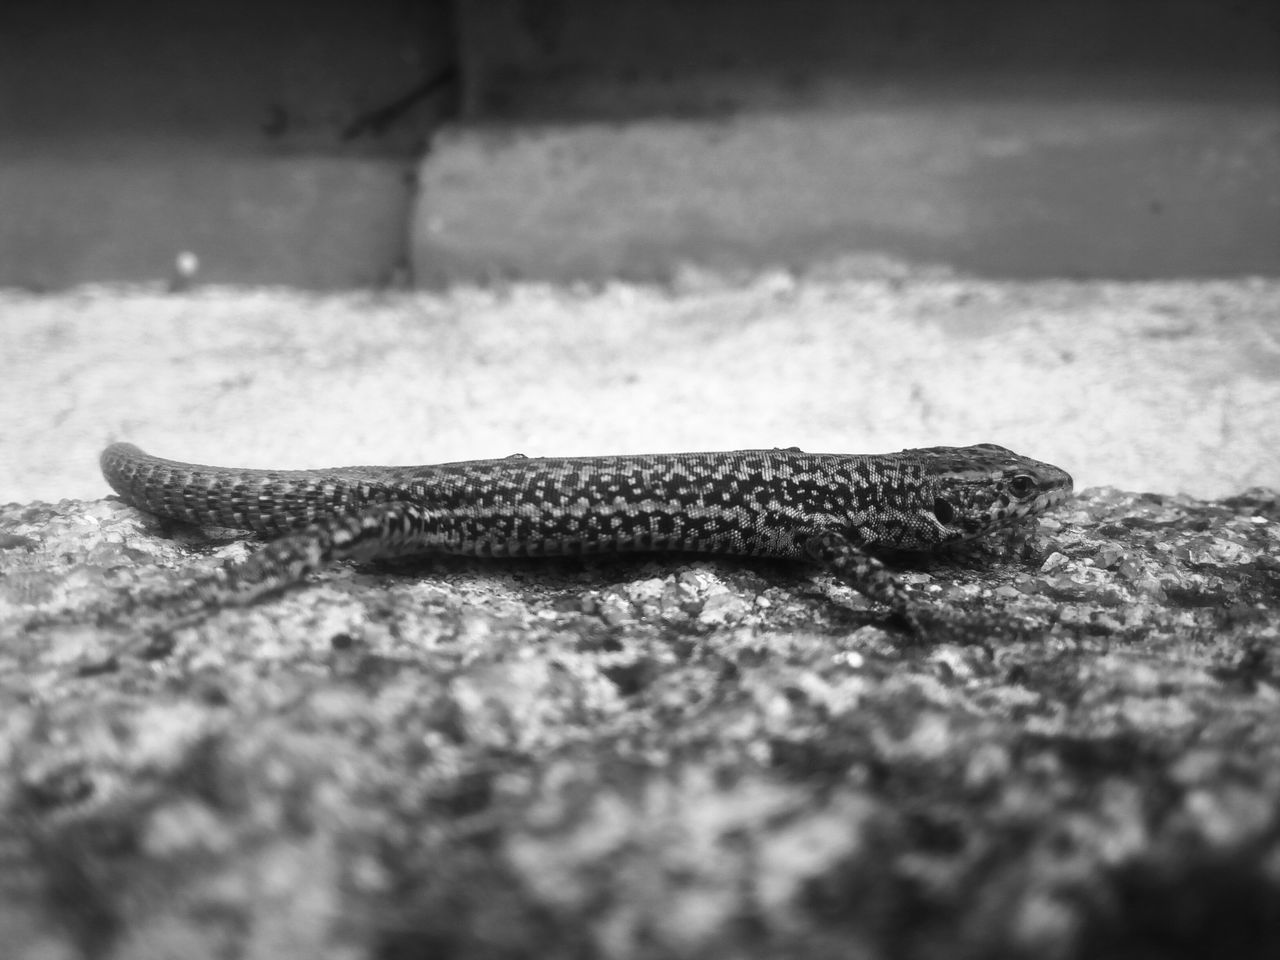 Salamander 👊 Taking Photos Check This Out Contrast Edit Photo HASHTAG Bqaquaris M4.5 Summer Summertime Focus Randomshot Poser ❤ Wildlife